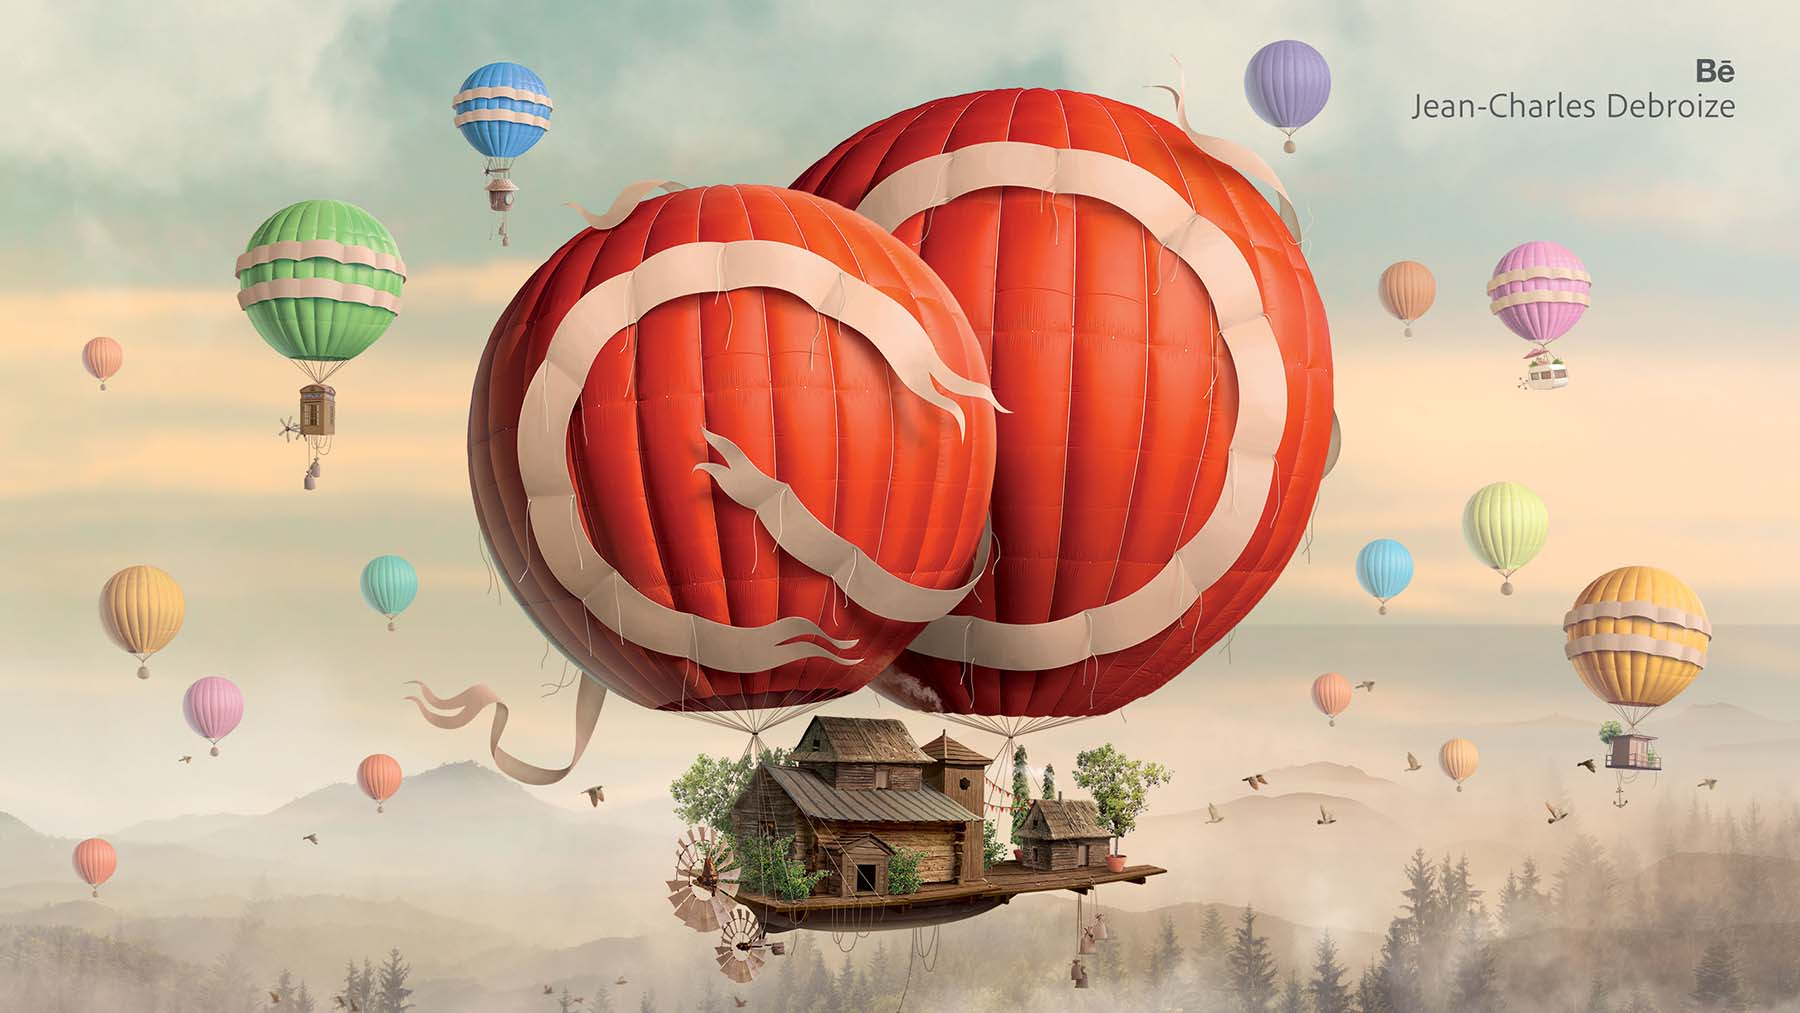 Creative Cloud Overview Artwork by Jean-Charles Debroize